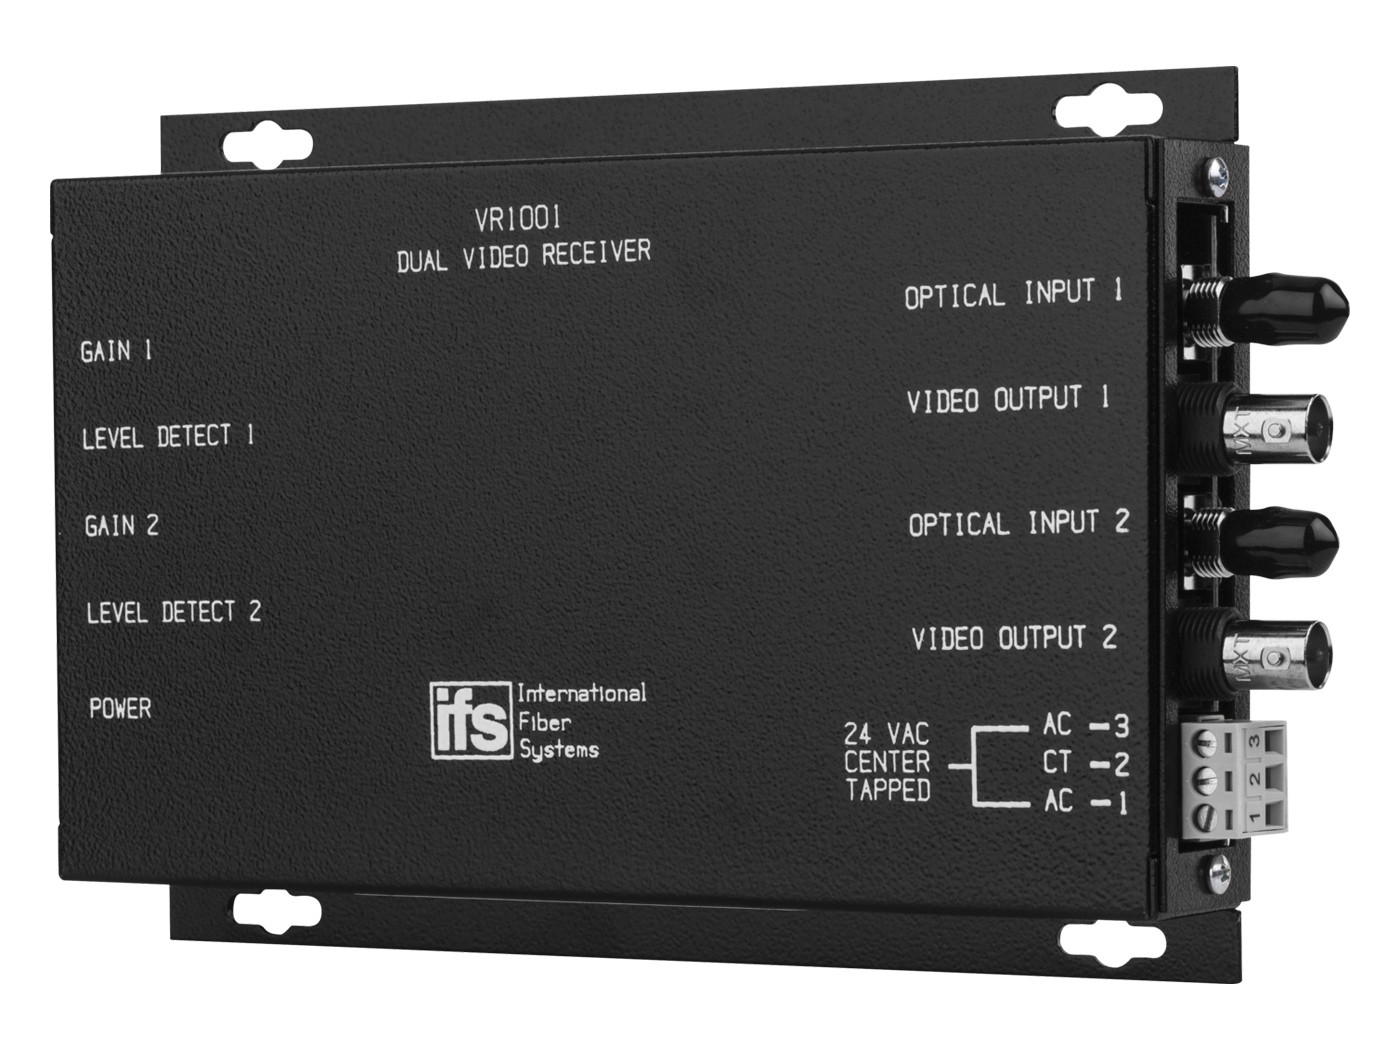 VR1001 IFS DUAL INDEPENTENT VIDEO RECEIVERS WITH MANUAL GAIN ************************* SPECIAL ORDER ITEM NO RETURNS OR SUBJECT TO RESTOCK FEE *************************